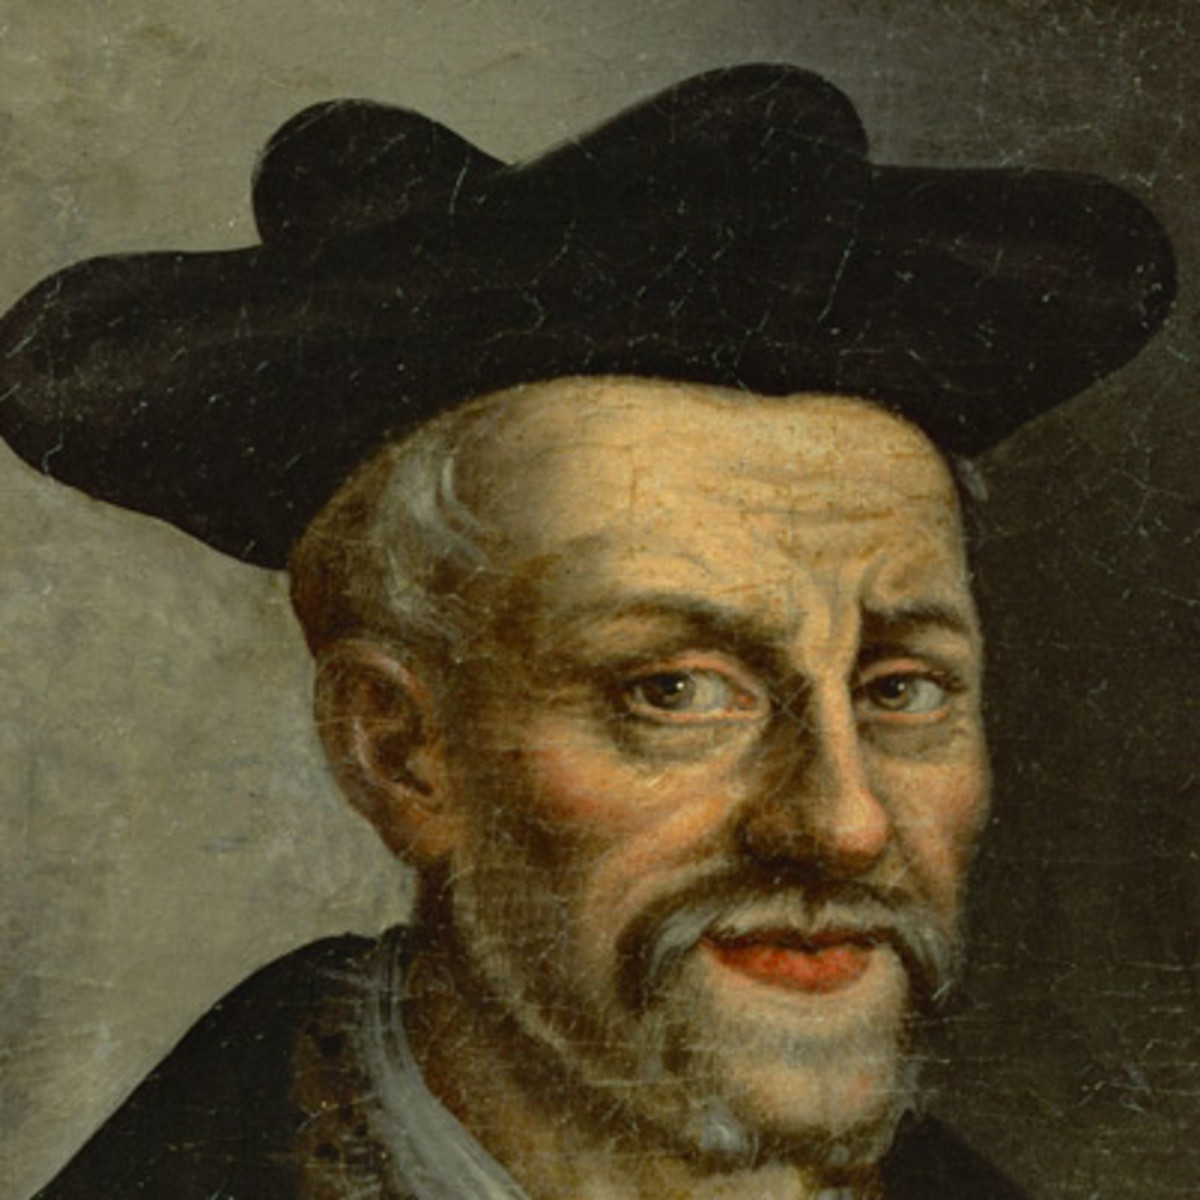 francois rabelais satire of medieval and renaissance John gonzalez francois rabelais francois life franciscan novice at the convent of la baumette moved to the franciscan convent fontenay-le-comte in poitou, france received holy orders by 1521 life as a monk studied greek philosophy and literature while in the franciscan monastery.